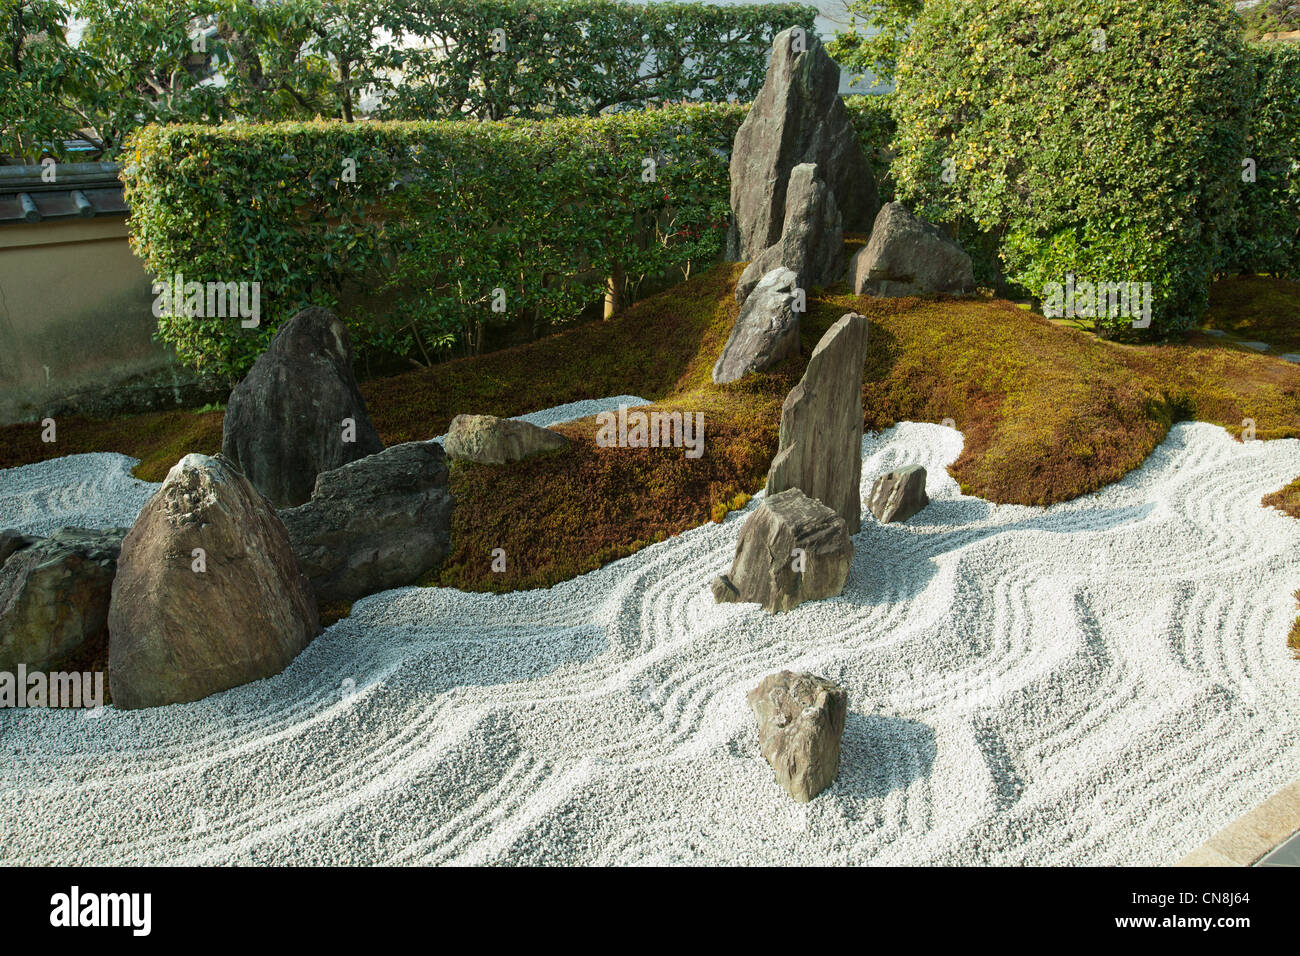 Zuiho-in is known for its modern karesansui or dry zen landscape garden esigned lby Shigemori Mirei. - Stock Image